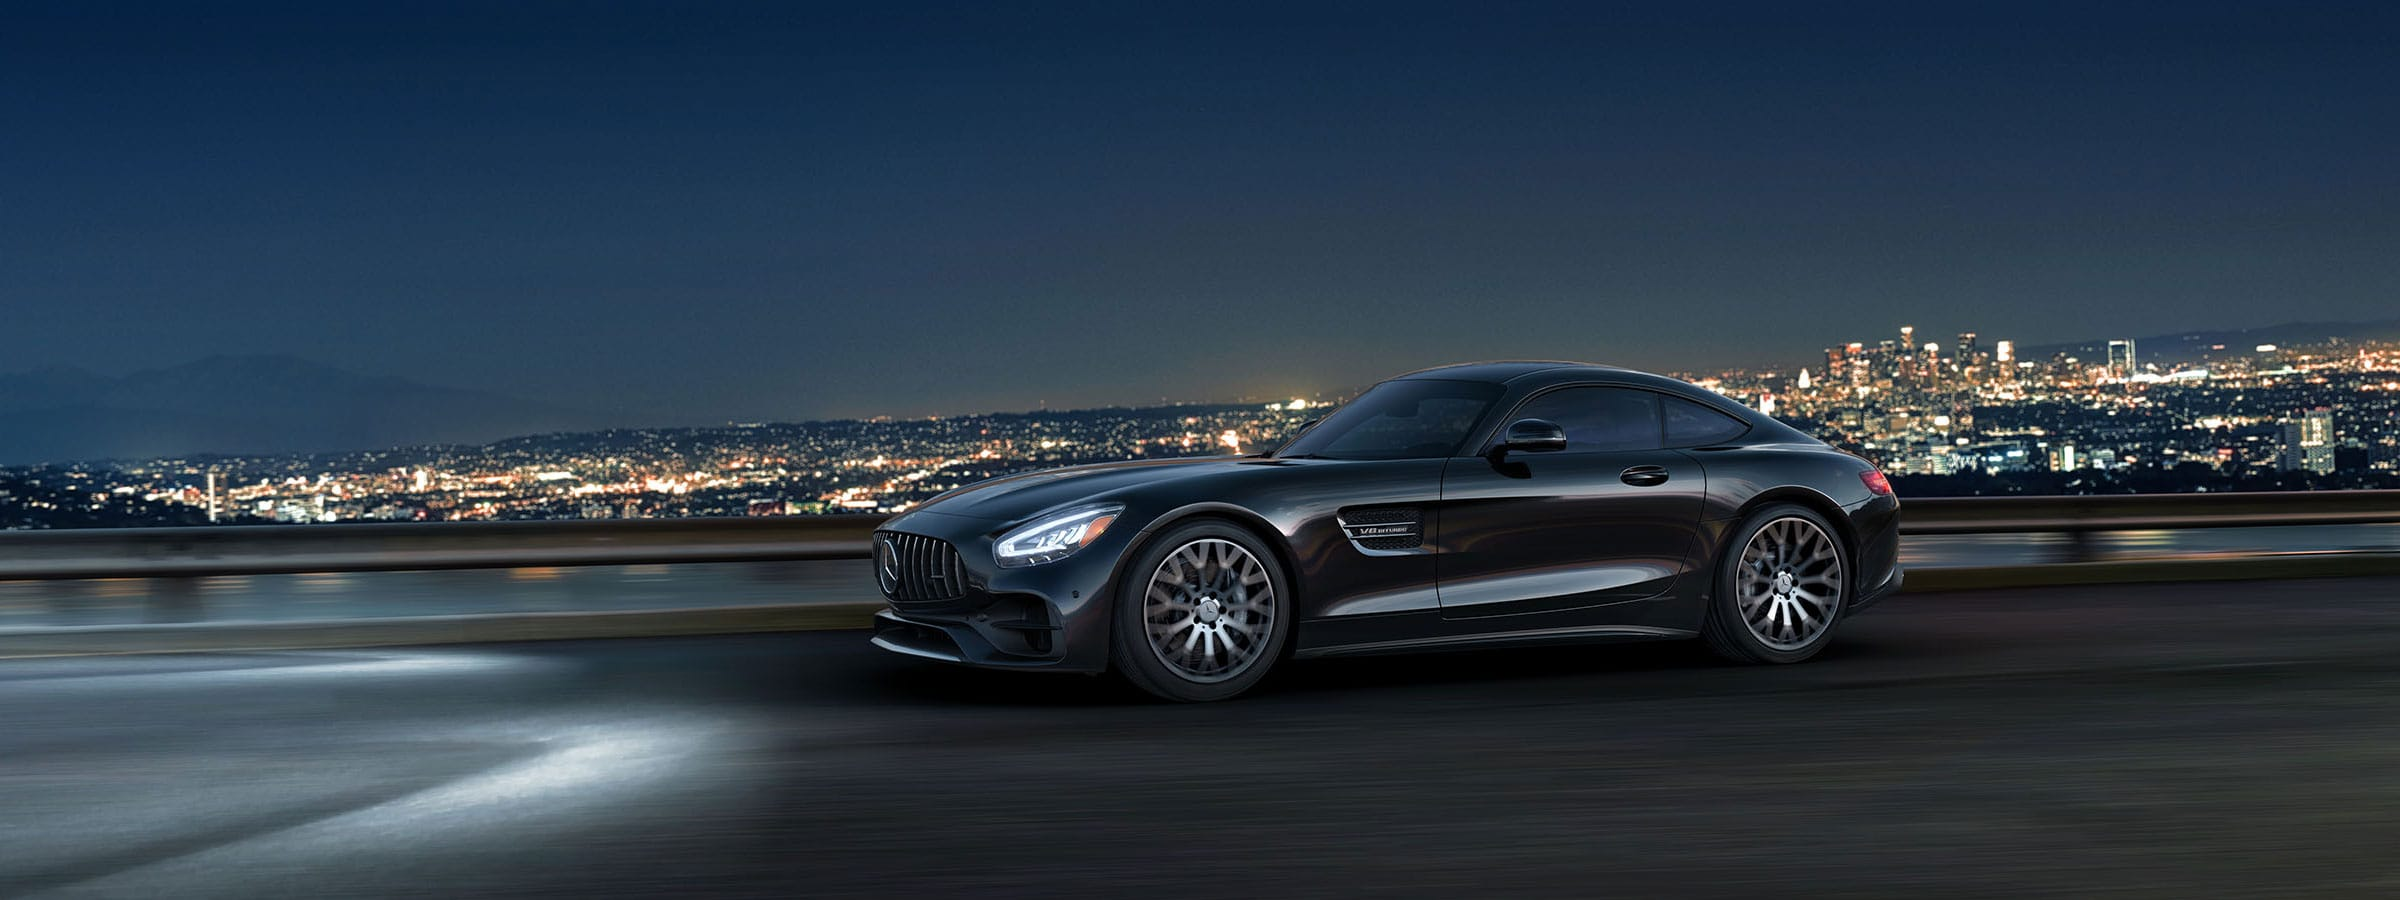 Mercedes Benz Amg Gt >> 2020 Mercedes Amg High Performance Gt C Coupe Sports Car